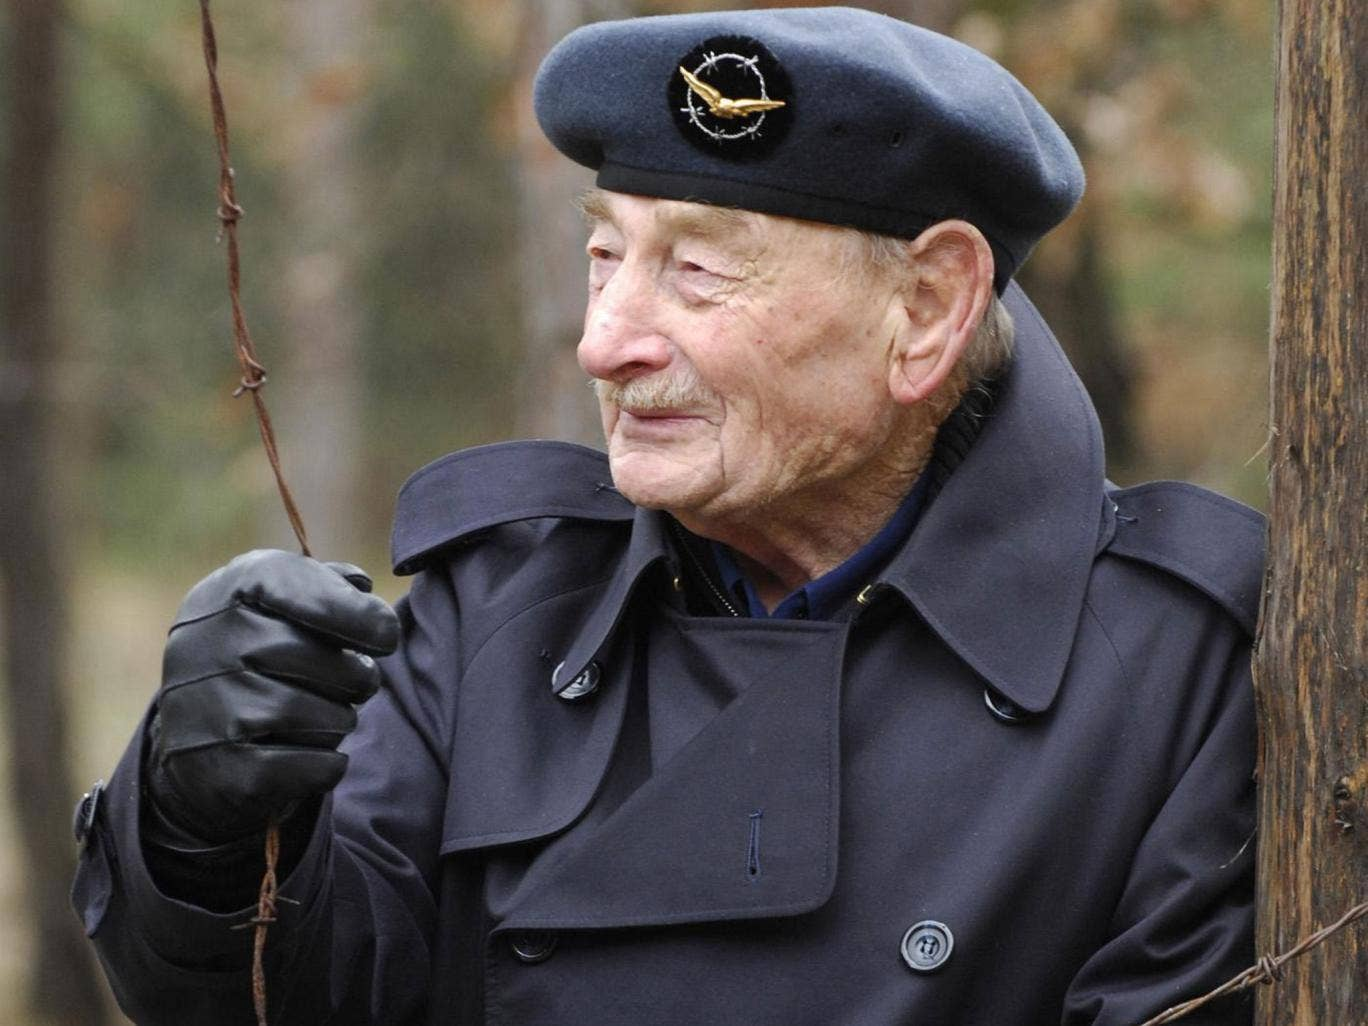 Mr Fripp at Stalag Luft III on the 65th anniversary of the Great Escape